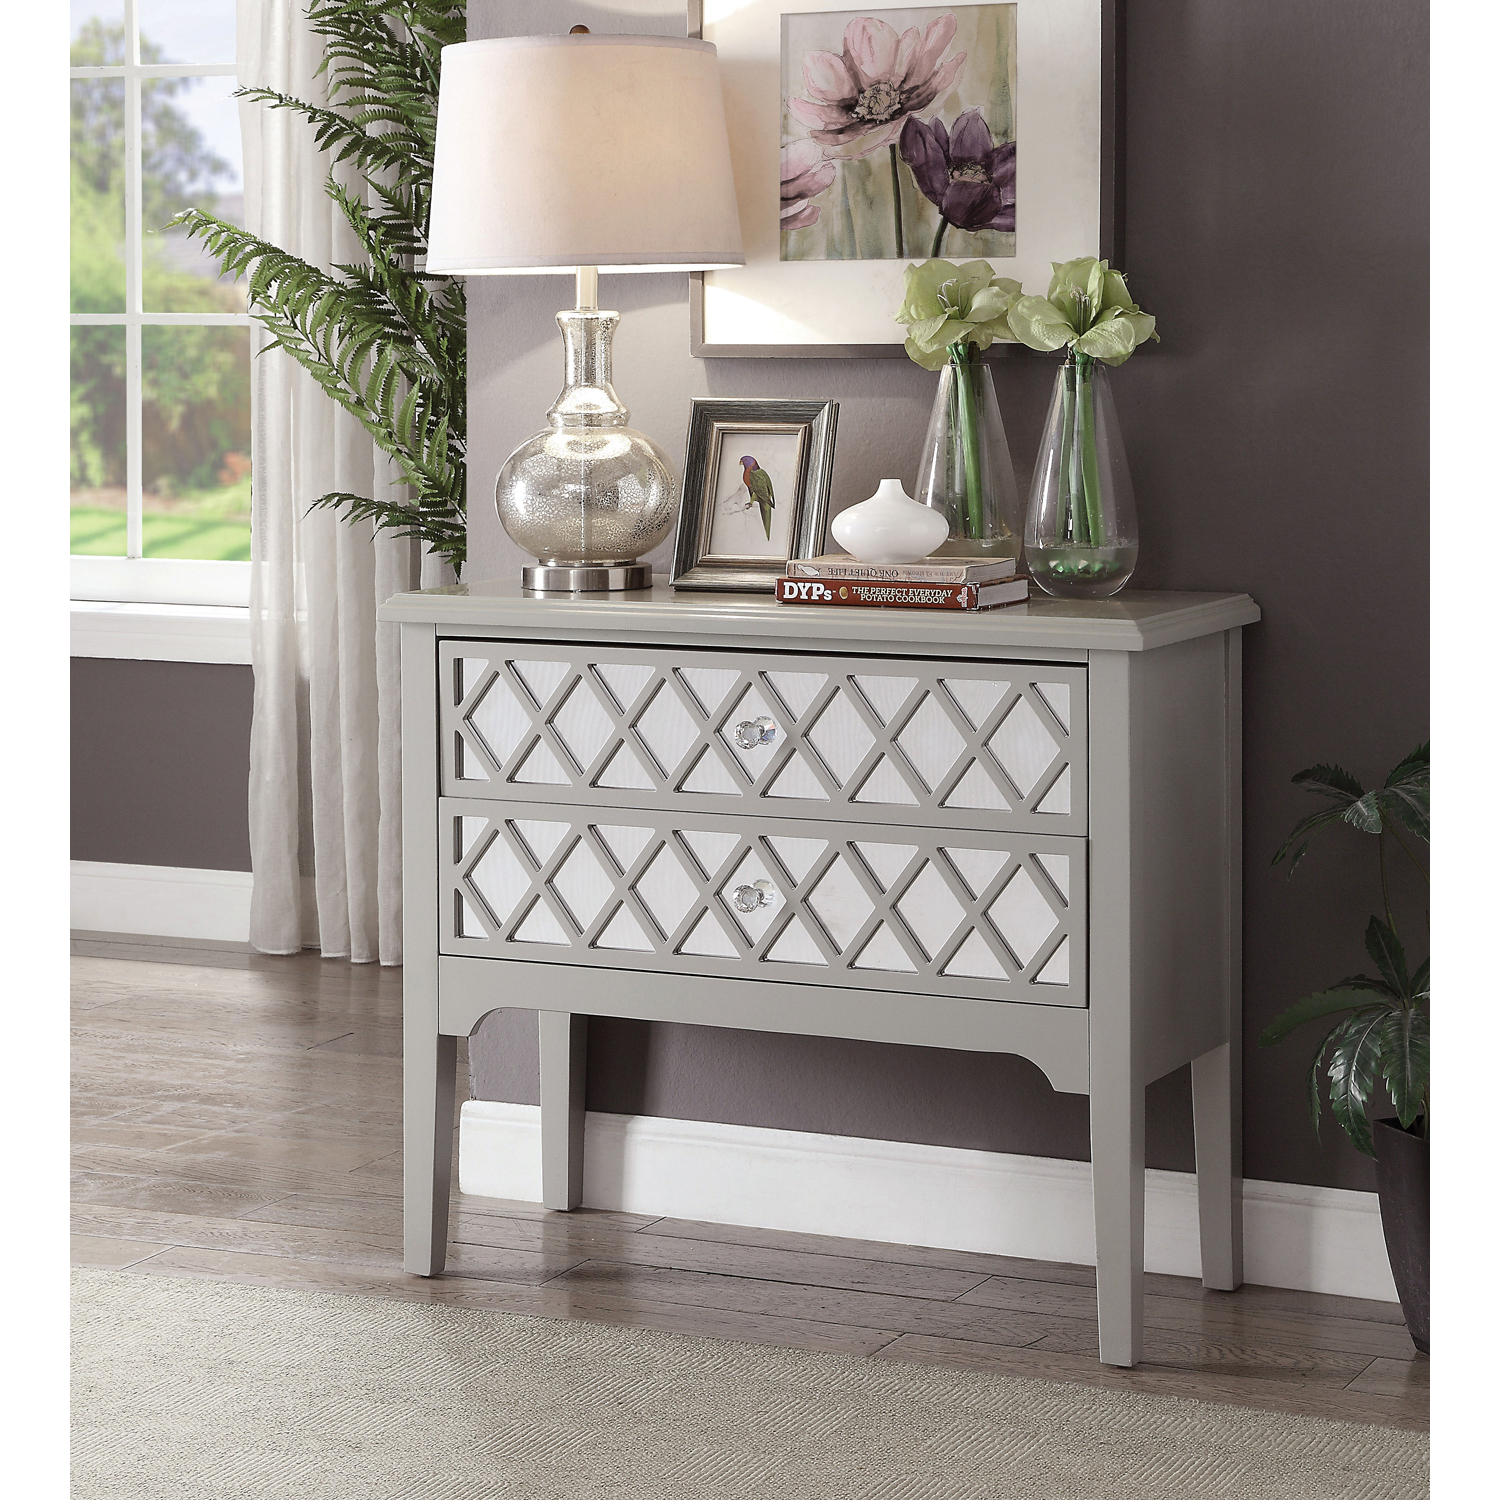 Furniture Of America Jennia Contemporary Entryway Table Multiple Colors